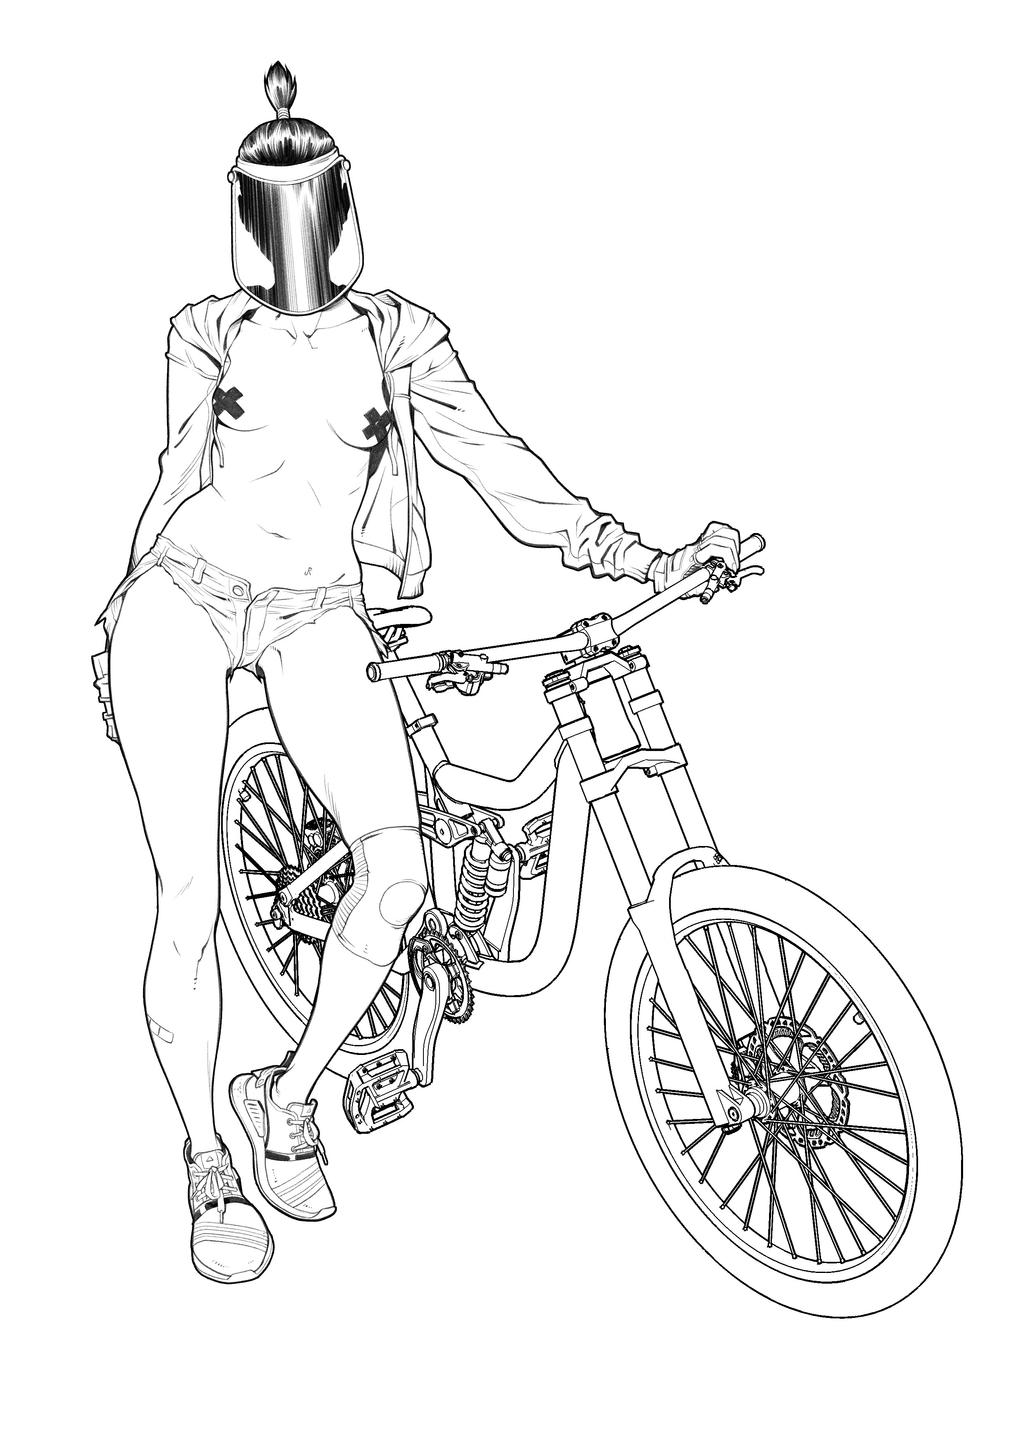 Bicycle chick